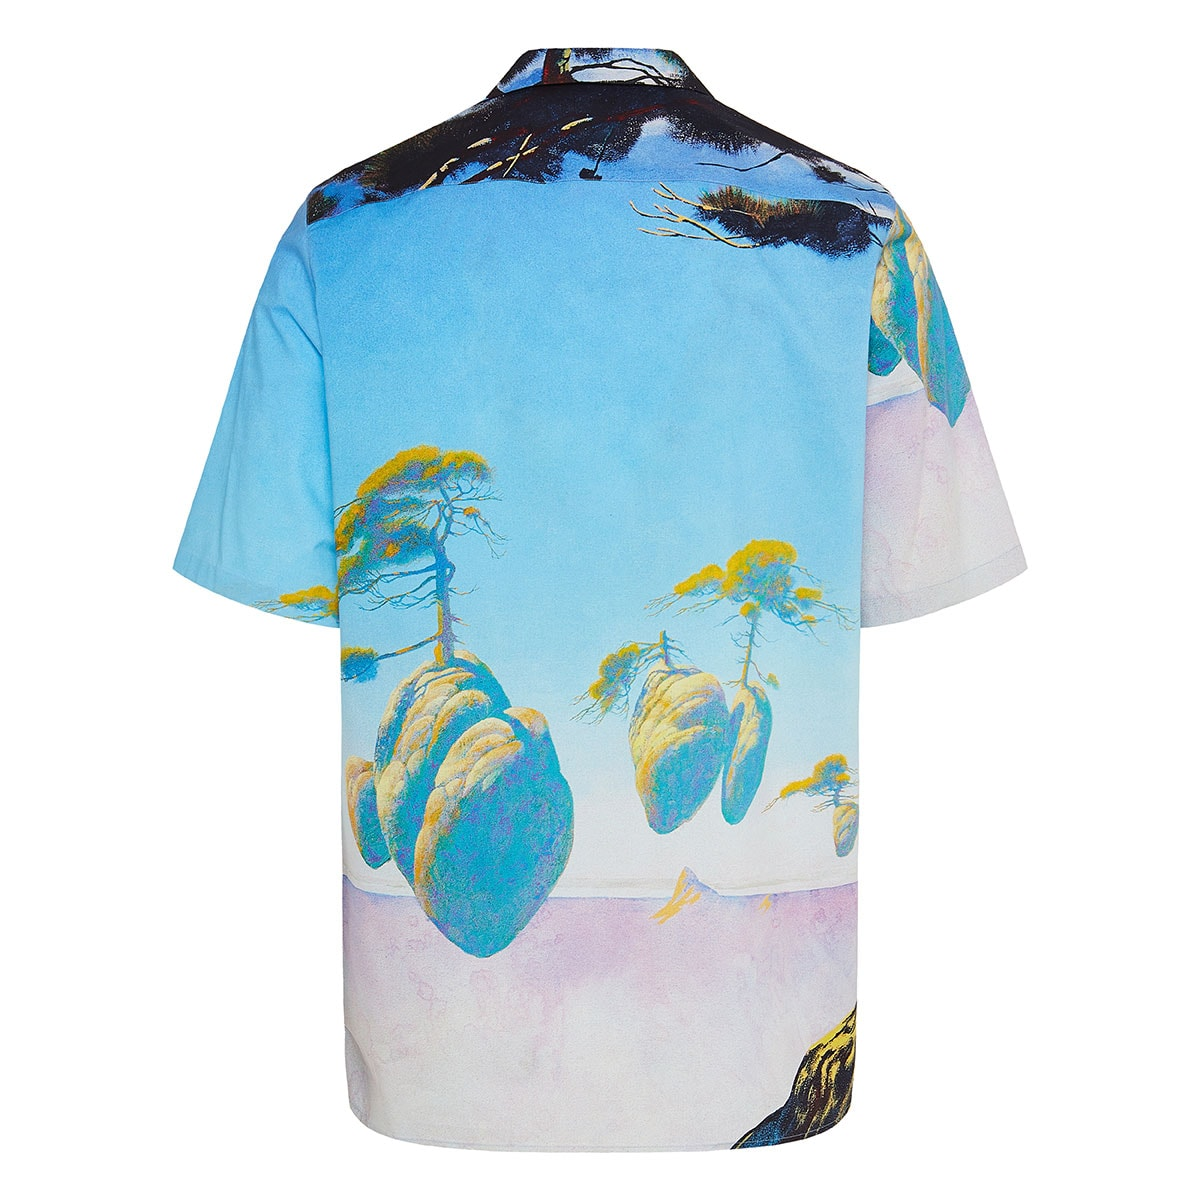 Floating Island oversized printed shirt